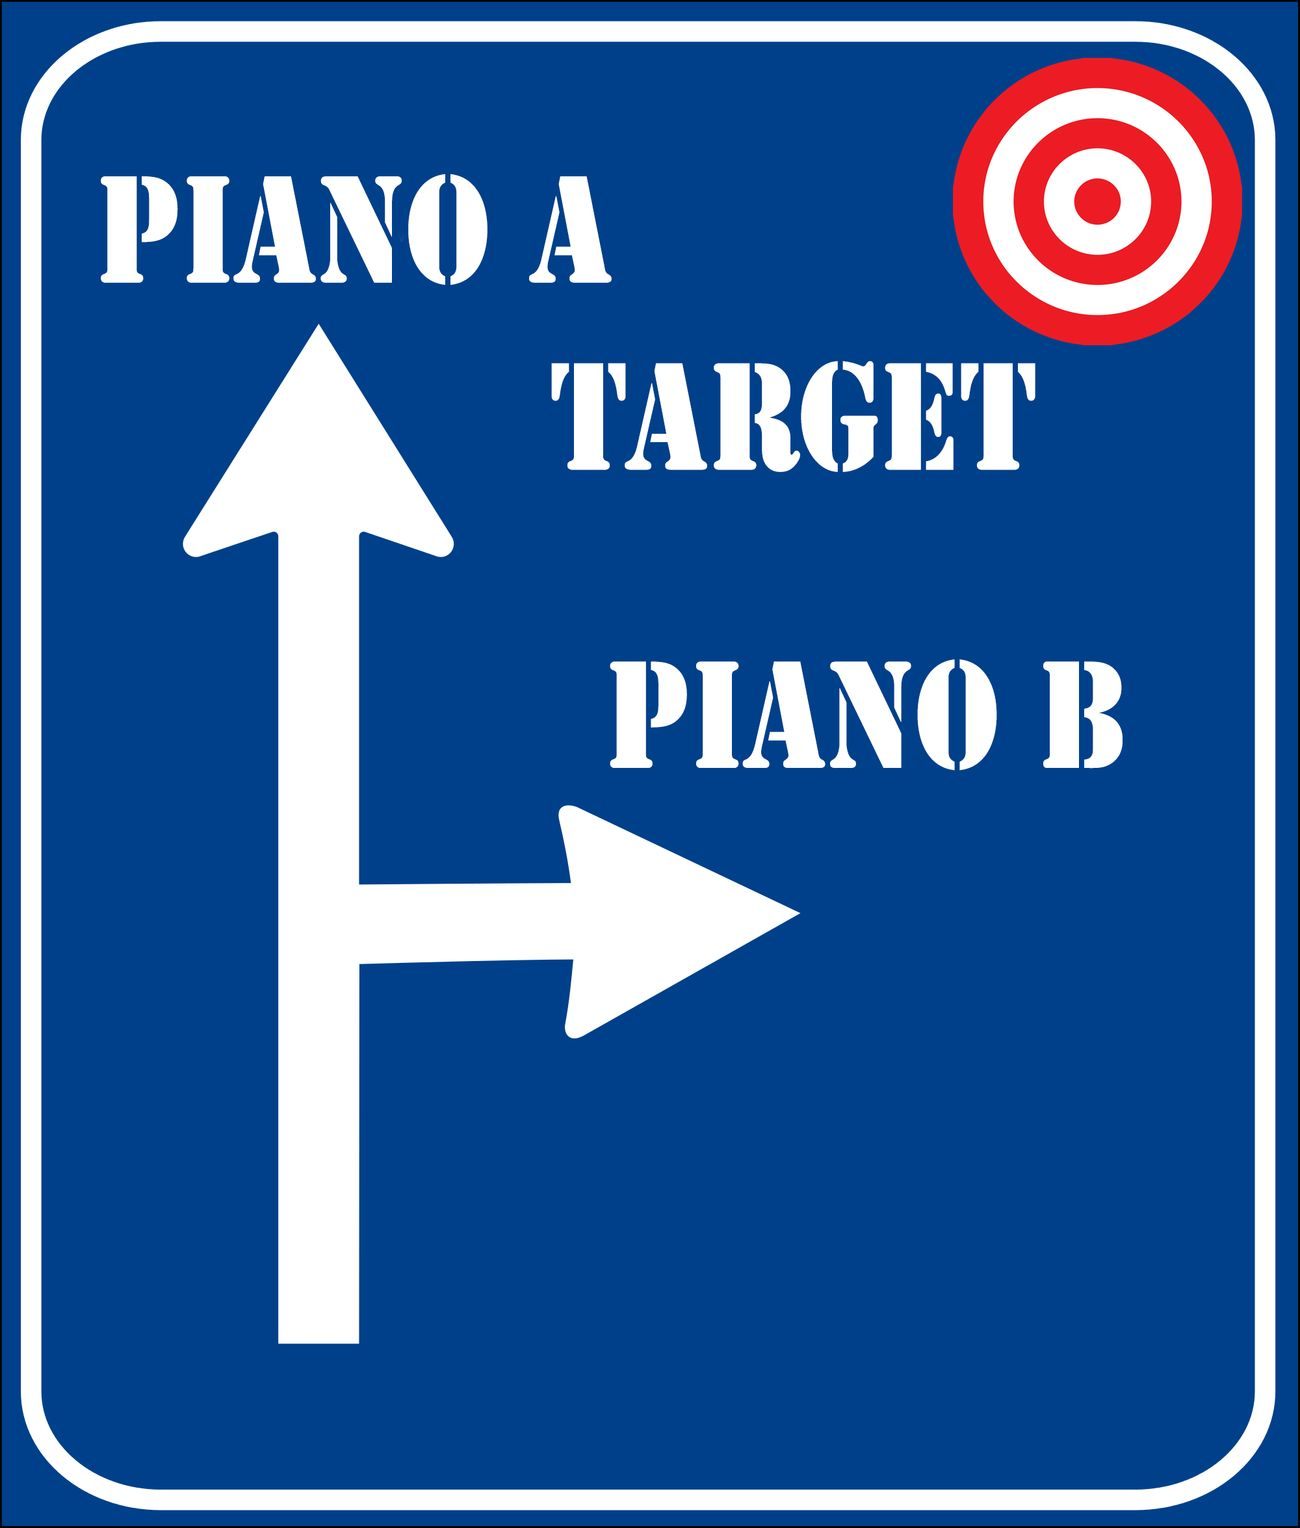 There are at least two ways of reaching the target. Remember the plan B if your Plan A doesn't work #SEO Ci sono almeno due possibilità per raggiungere l'obiettivo. Ricorda il piano B se il tuo piano A non funziona #SEO Marketing Search Engine Optimization Seo